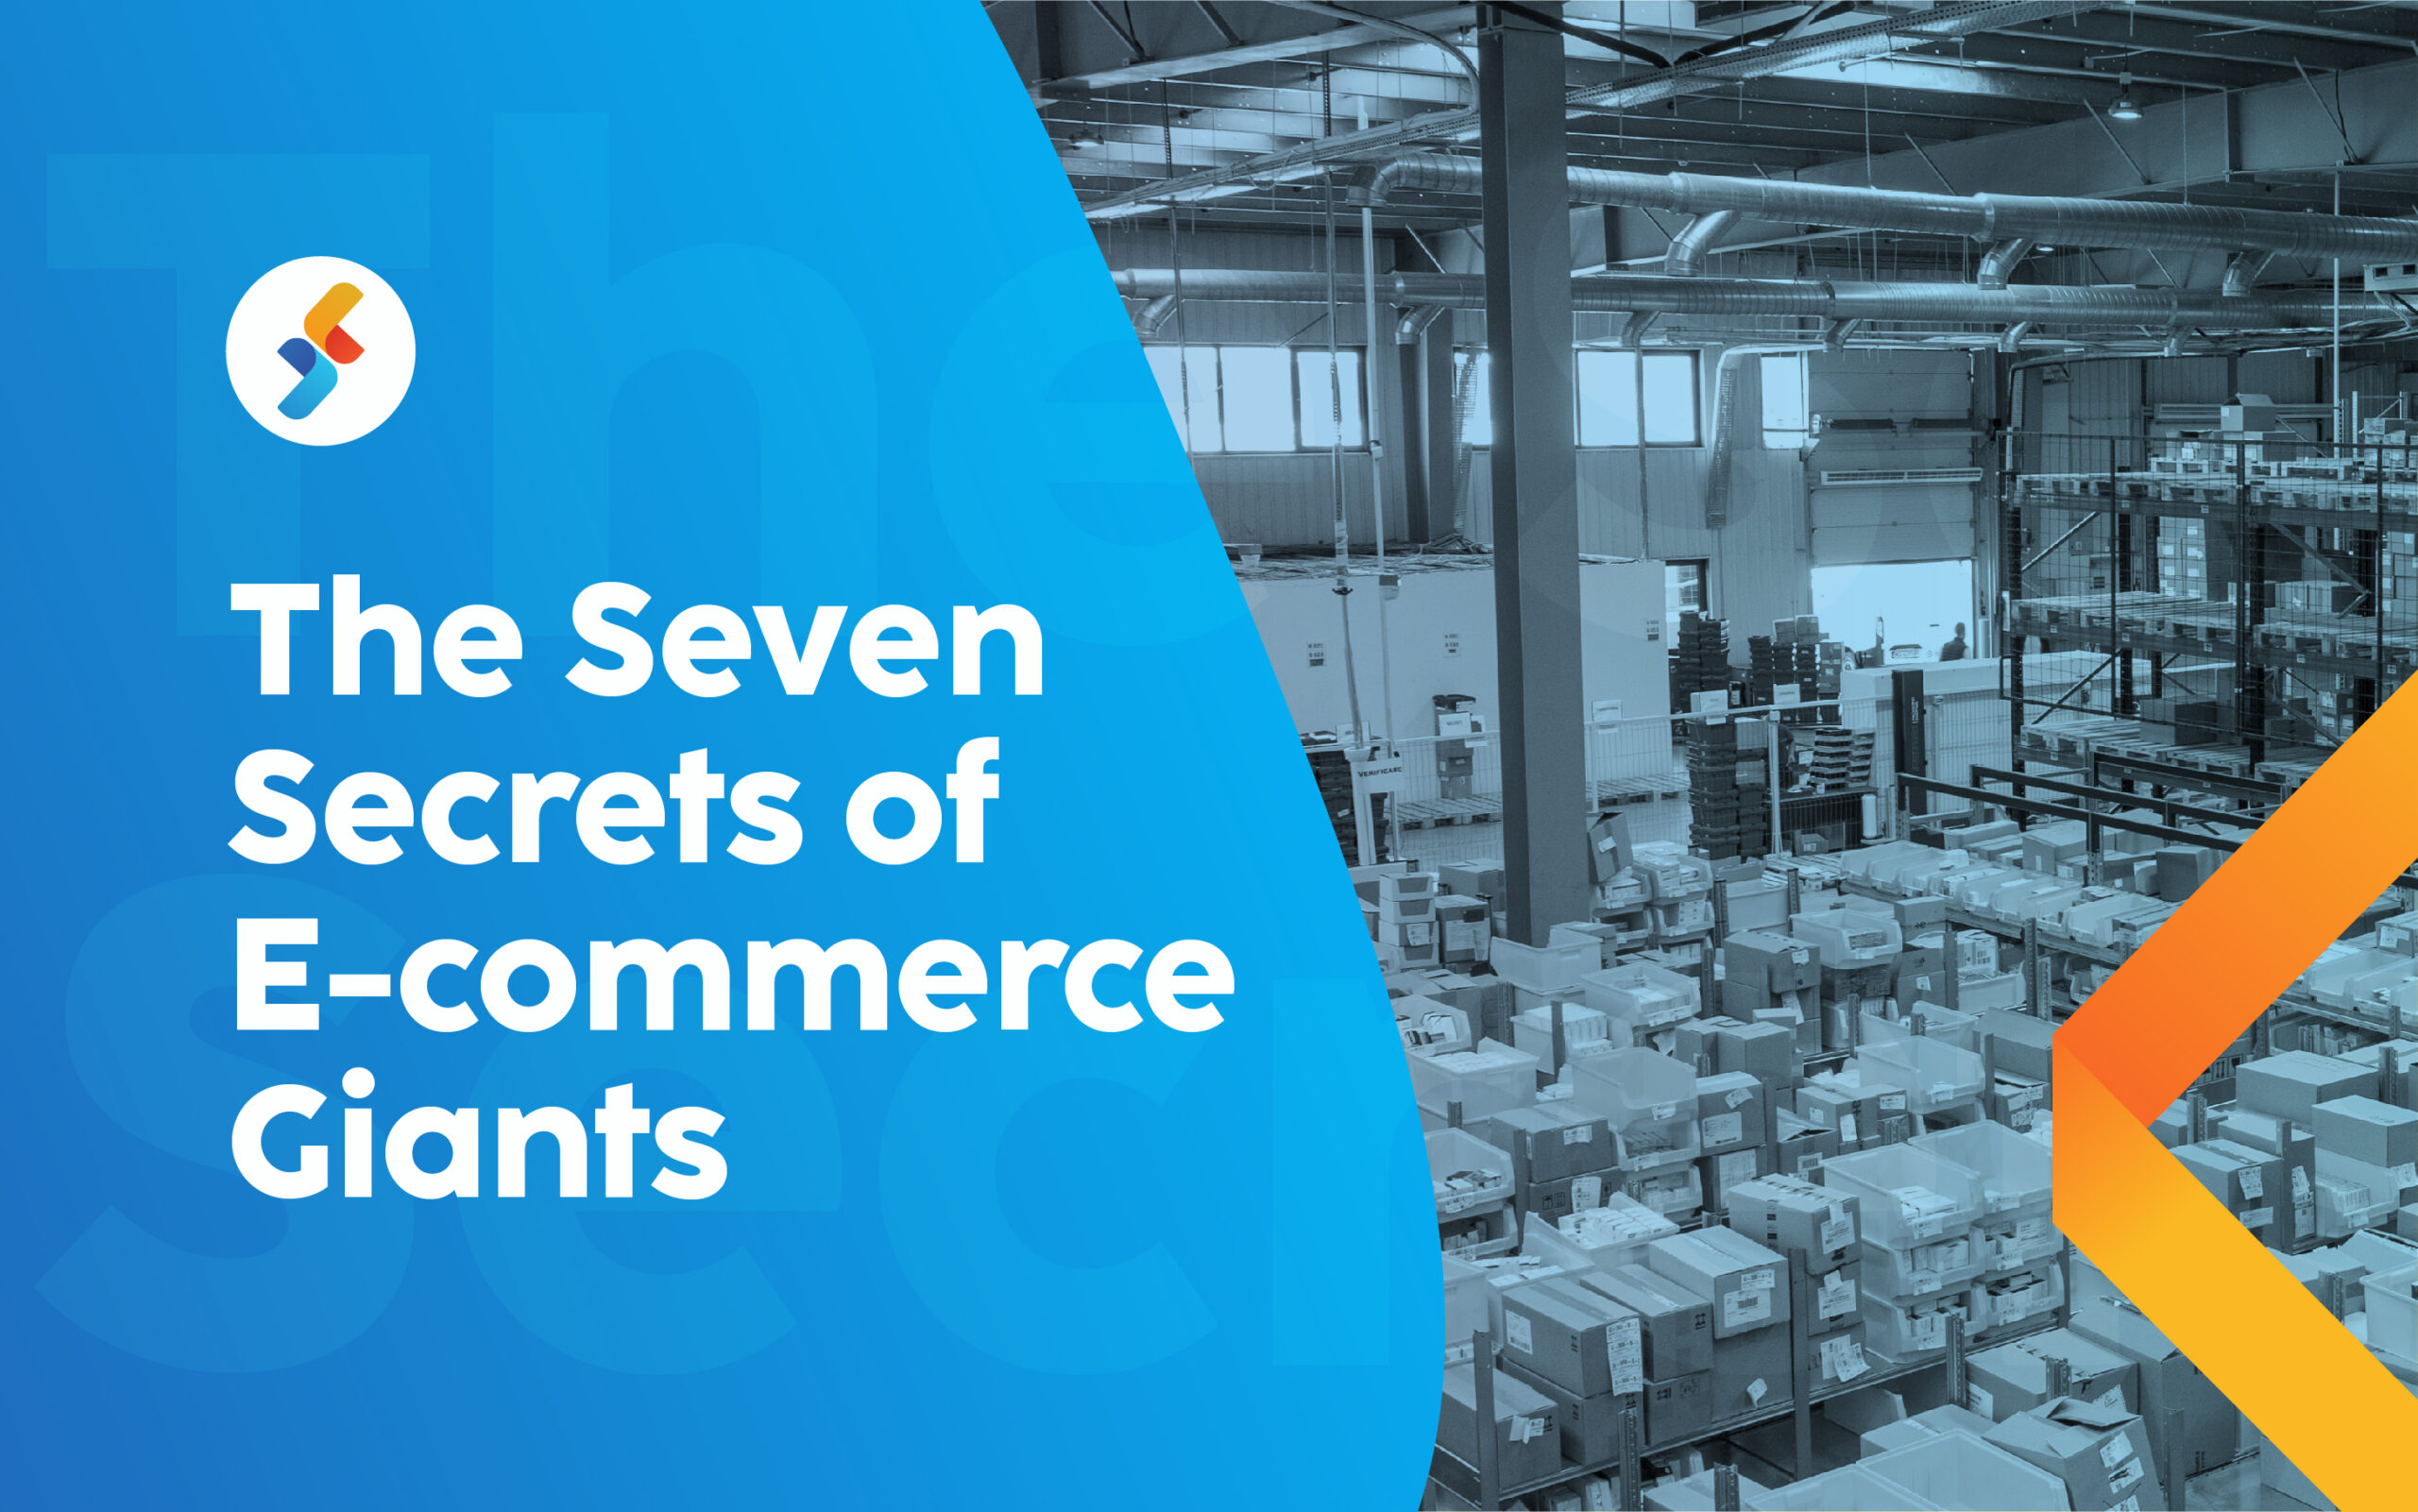 The 7 Secrets of E-commerce Giants – And What Can You Learn From Them?